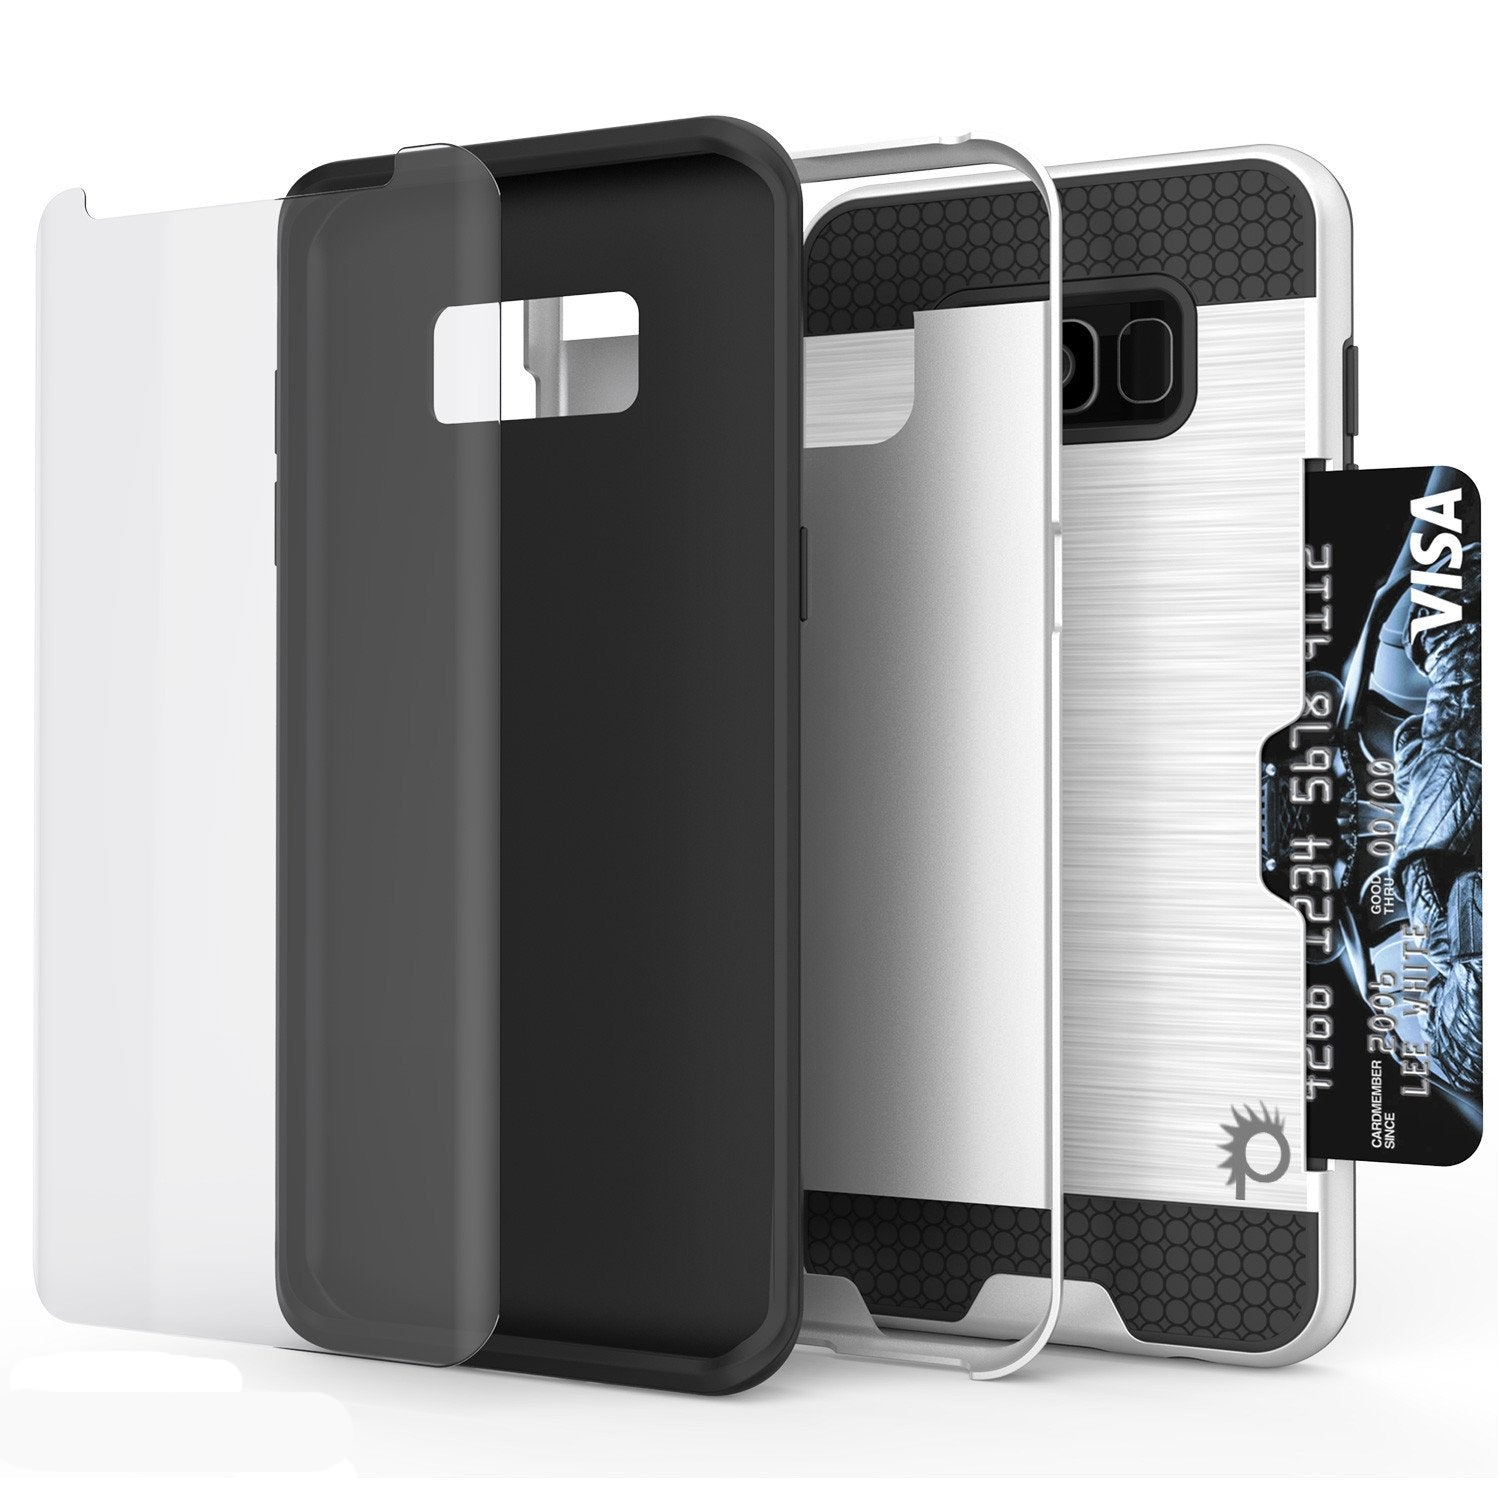 Galaxy S8 Plus Case, PUNKcase [SLOT Series] [Slim Fit] Dual-Layer Armor Cover w/Integrated Anti-Shock System, Credit Card Slot & Screen Protector